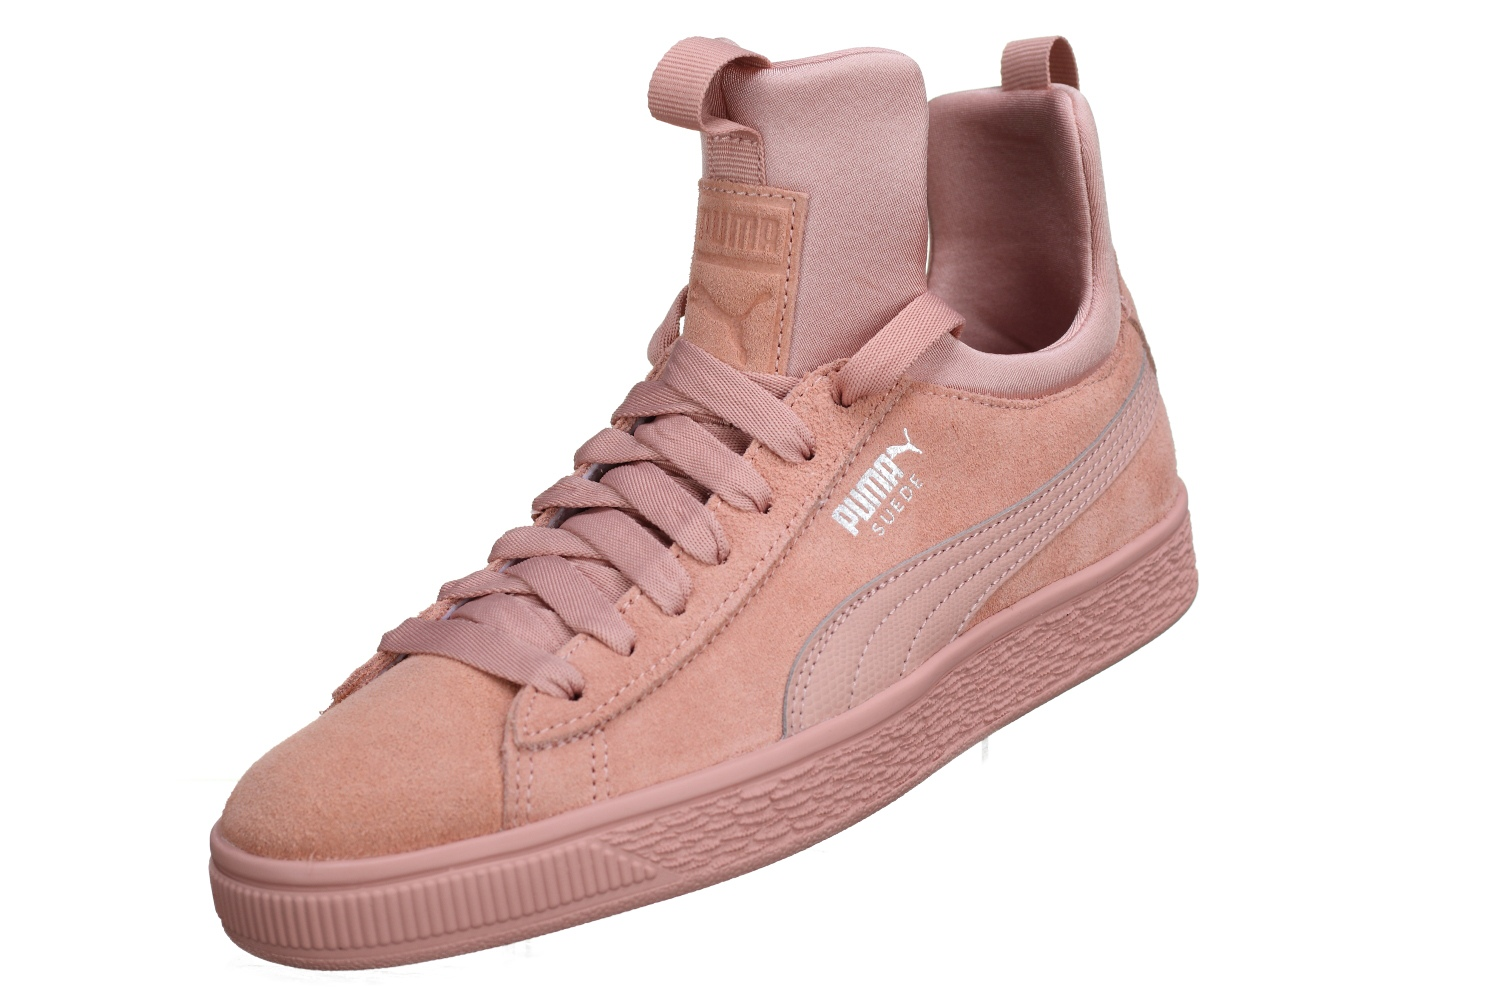 http://www.leadermode.com/141762/puma-suede-fierce-wn-s-366010-01-rose.jpg